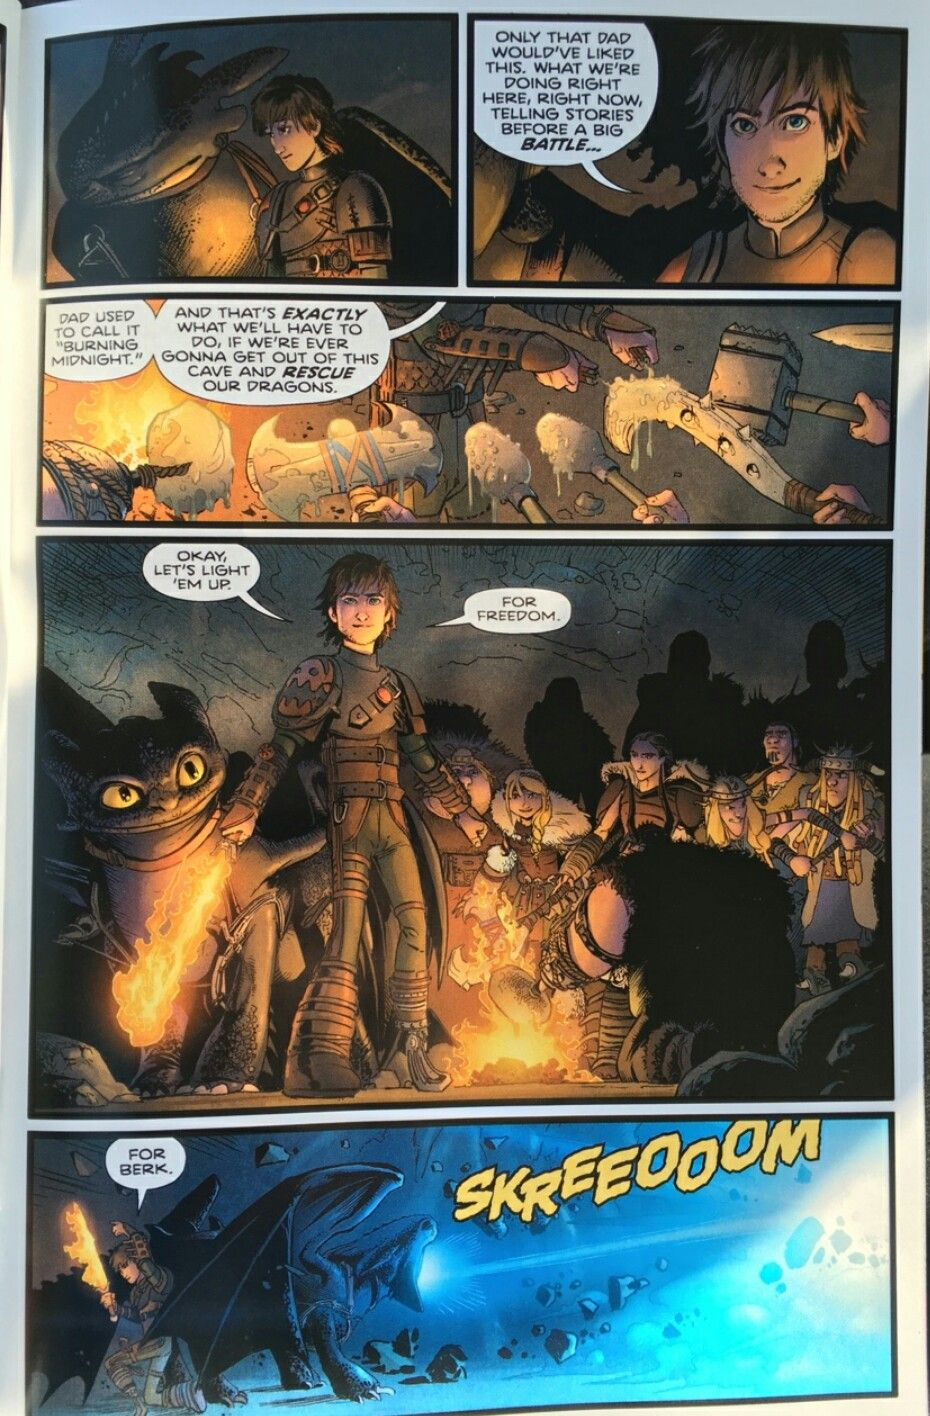 HTTYD OFFICIAL BURNING MIDNIGHT COMIC Part 8